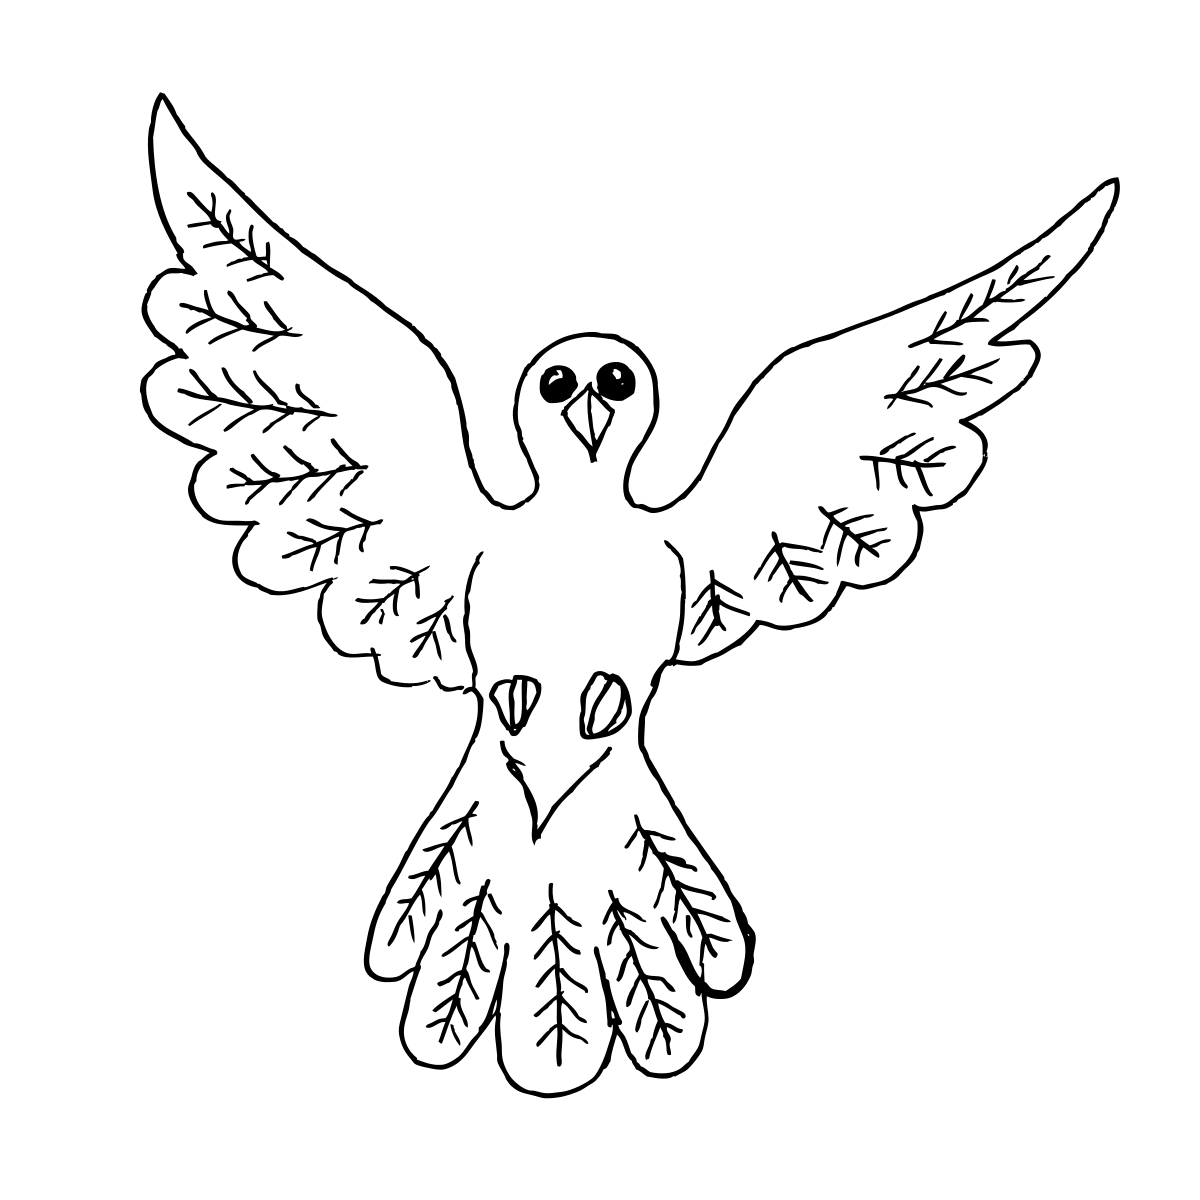 Dove Bird Outline Drawing Clipart By Konand Bird